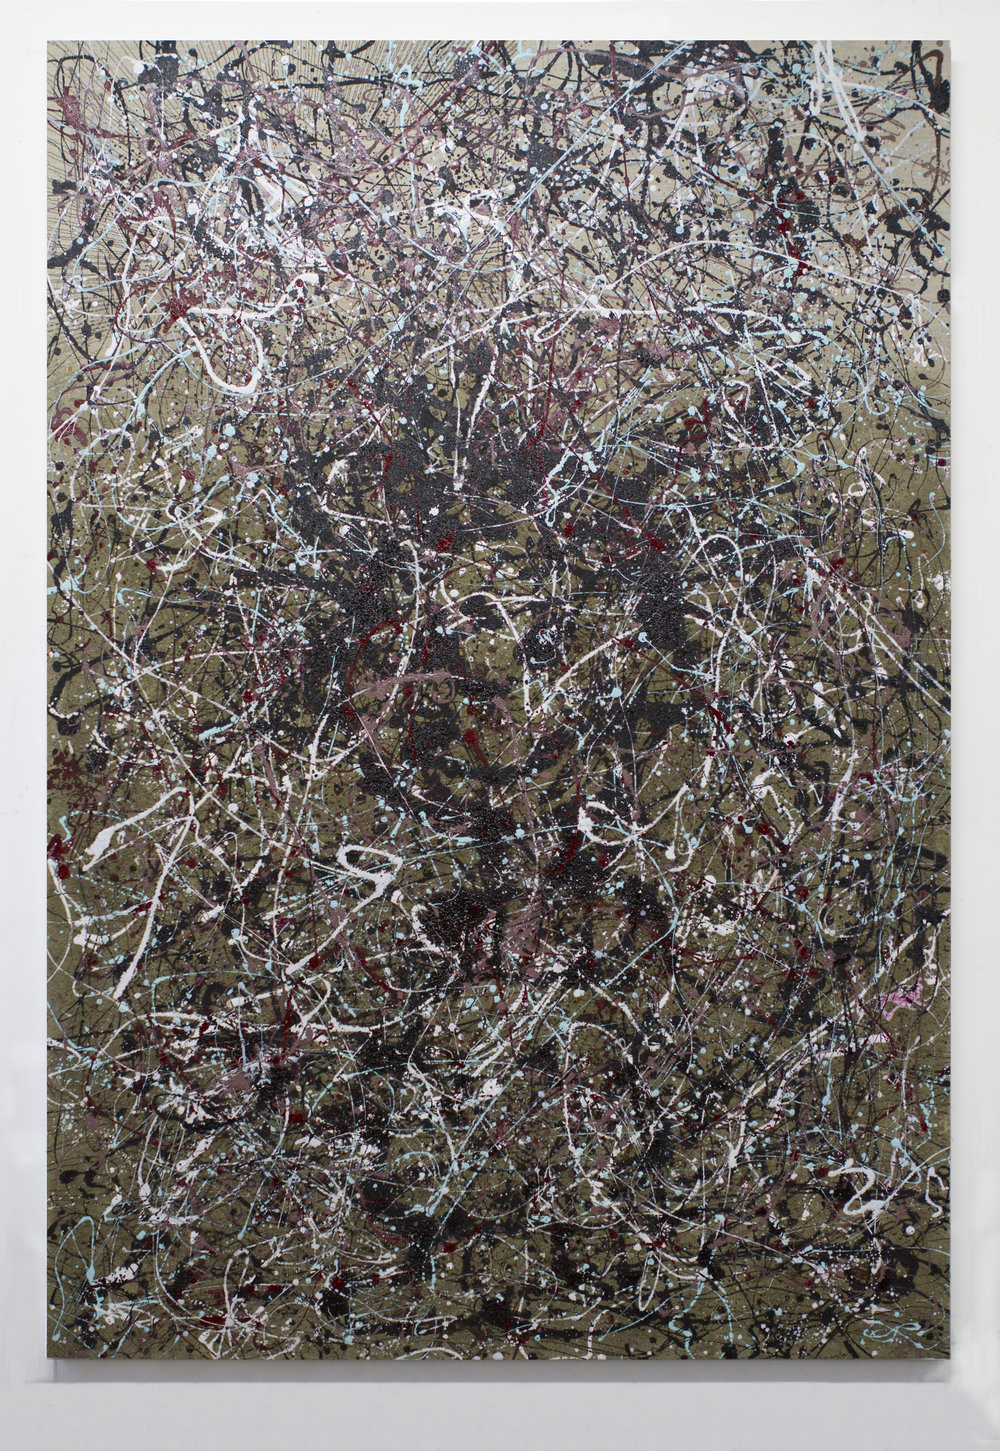 PigPen 2018 Dust and enamel on linen 70 x 48 inches